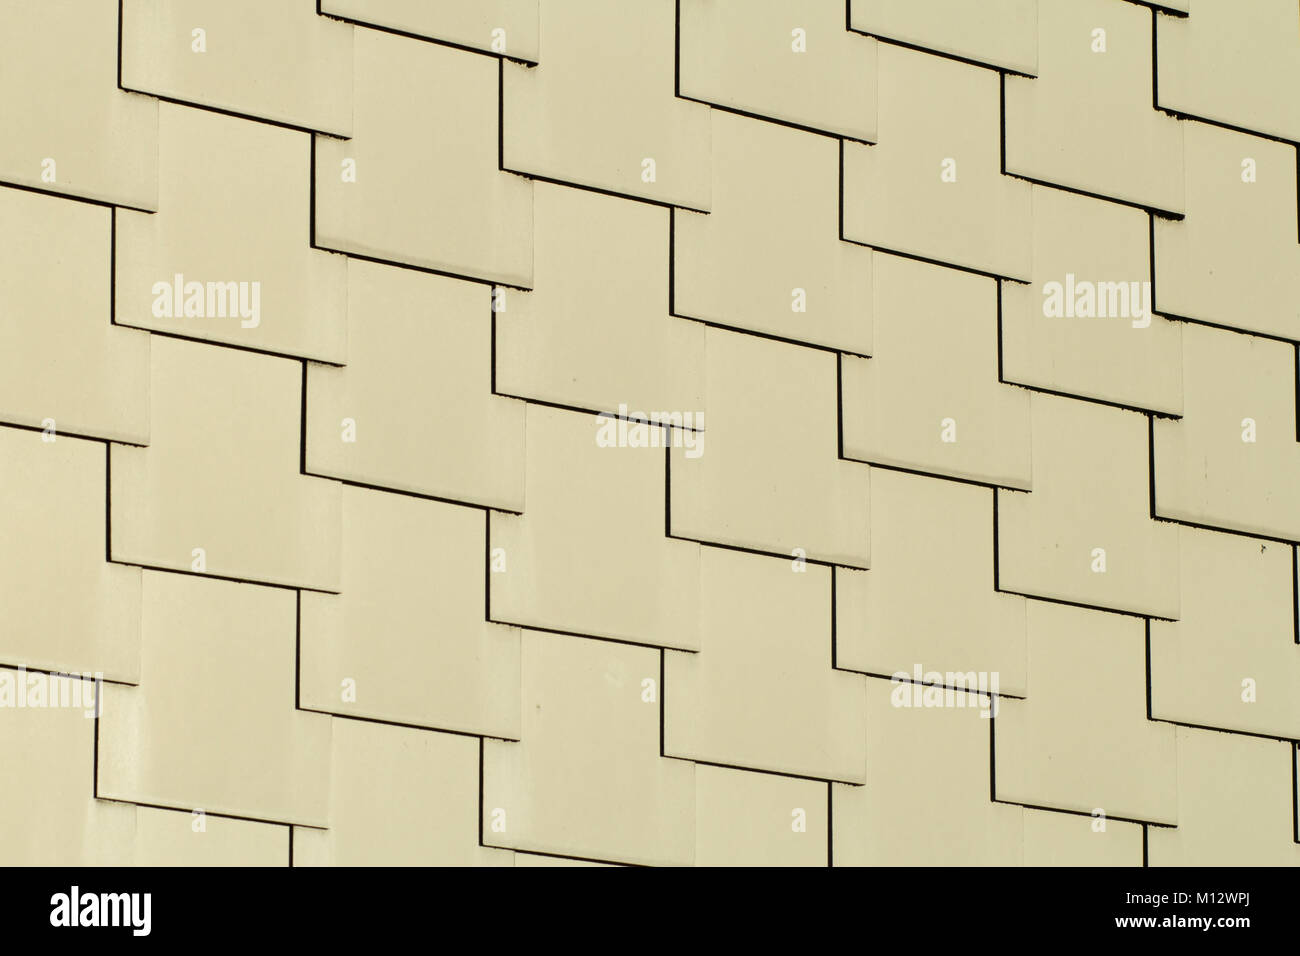 Abstract architectural background of overlapping cream-colored rectangular tiles in repeat rows in a full frame - Stock Image